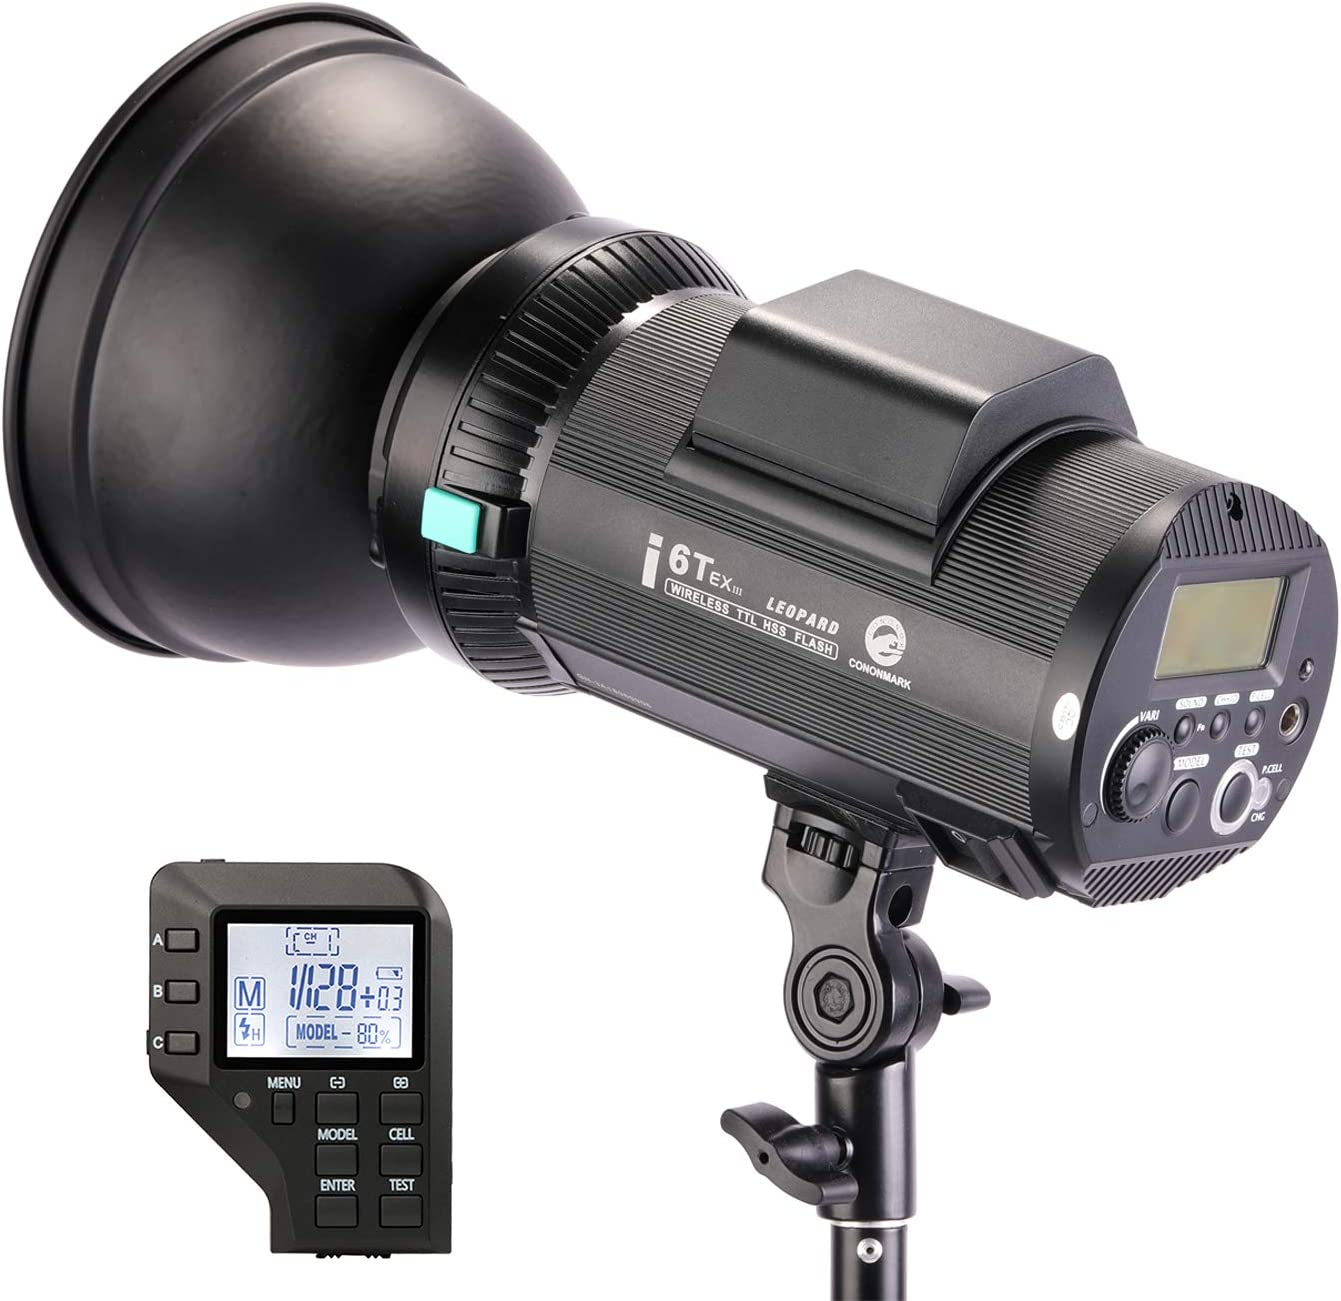 Neewer i6T EX 600W 2.4G TTL Studio Strobe 1/8000 HSS Flash Monolight Compatible with Nikon, Wireless Trigger/Modeling Lamp/Recycle in 0.2-1 Sec/Lithium Battery(400 Full Power Flashes)/Bowens Mount